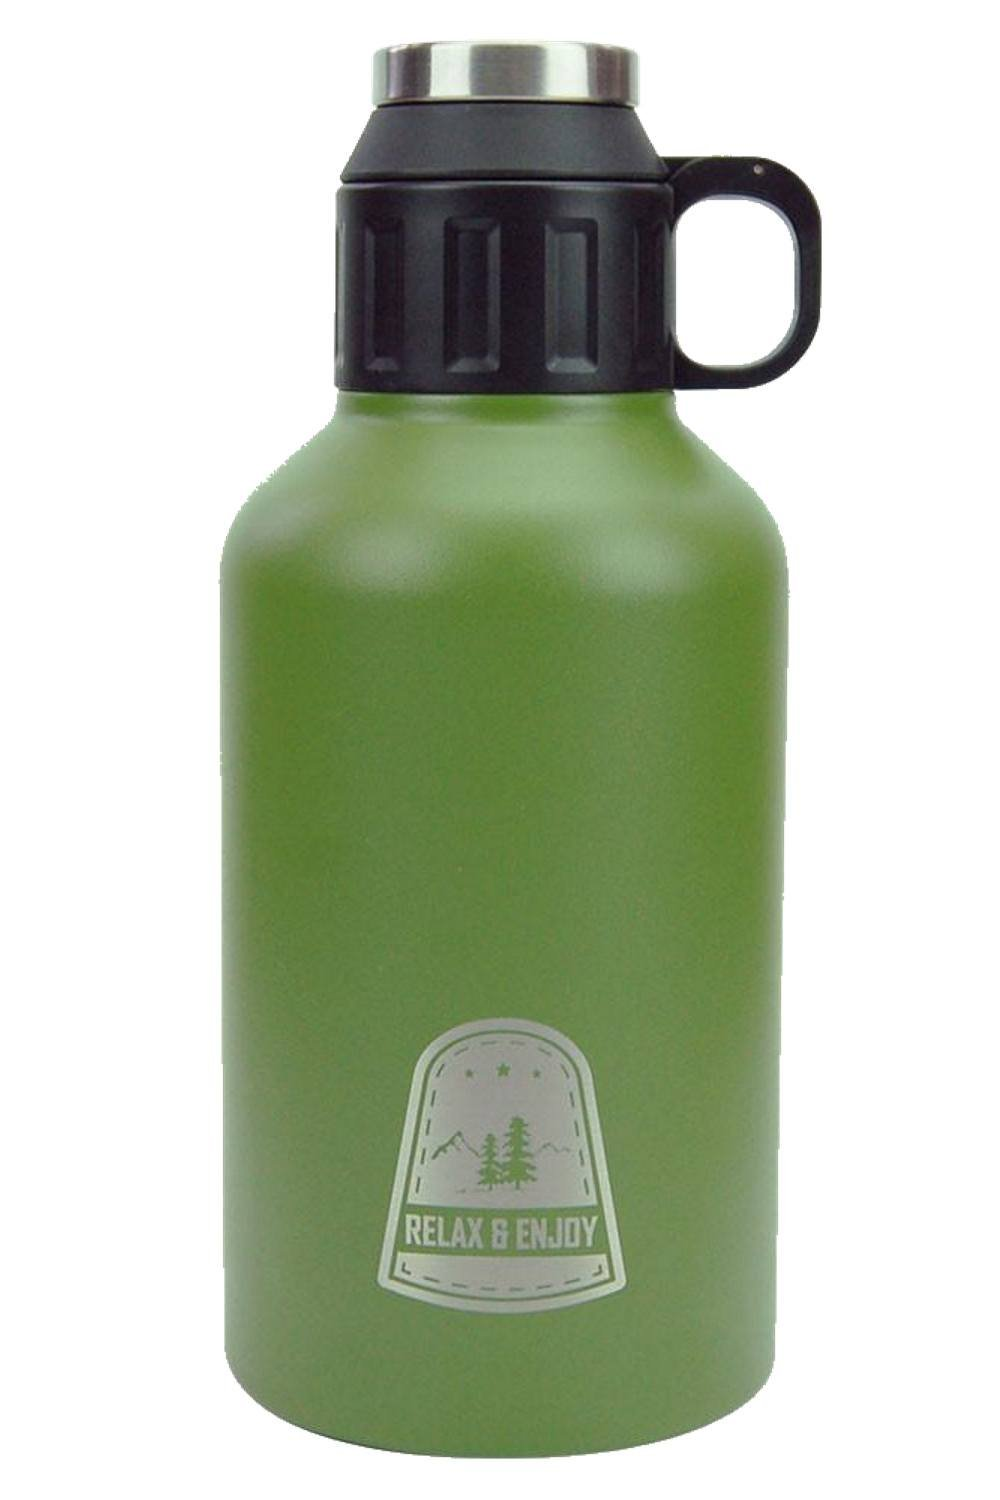 reduce COLD-1 Stainless Steel Insulated Growler, Outdoor Series''Relax and Enjoy'', 64oz (Green) by reduce